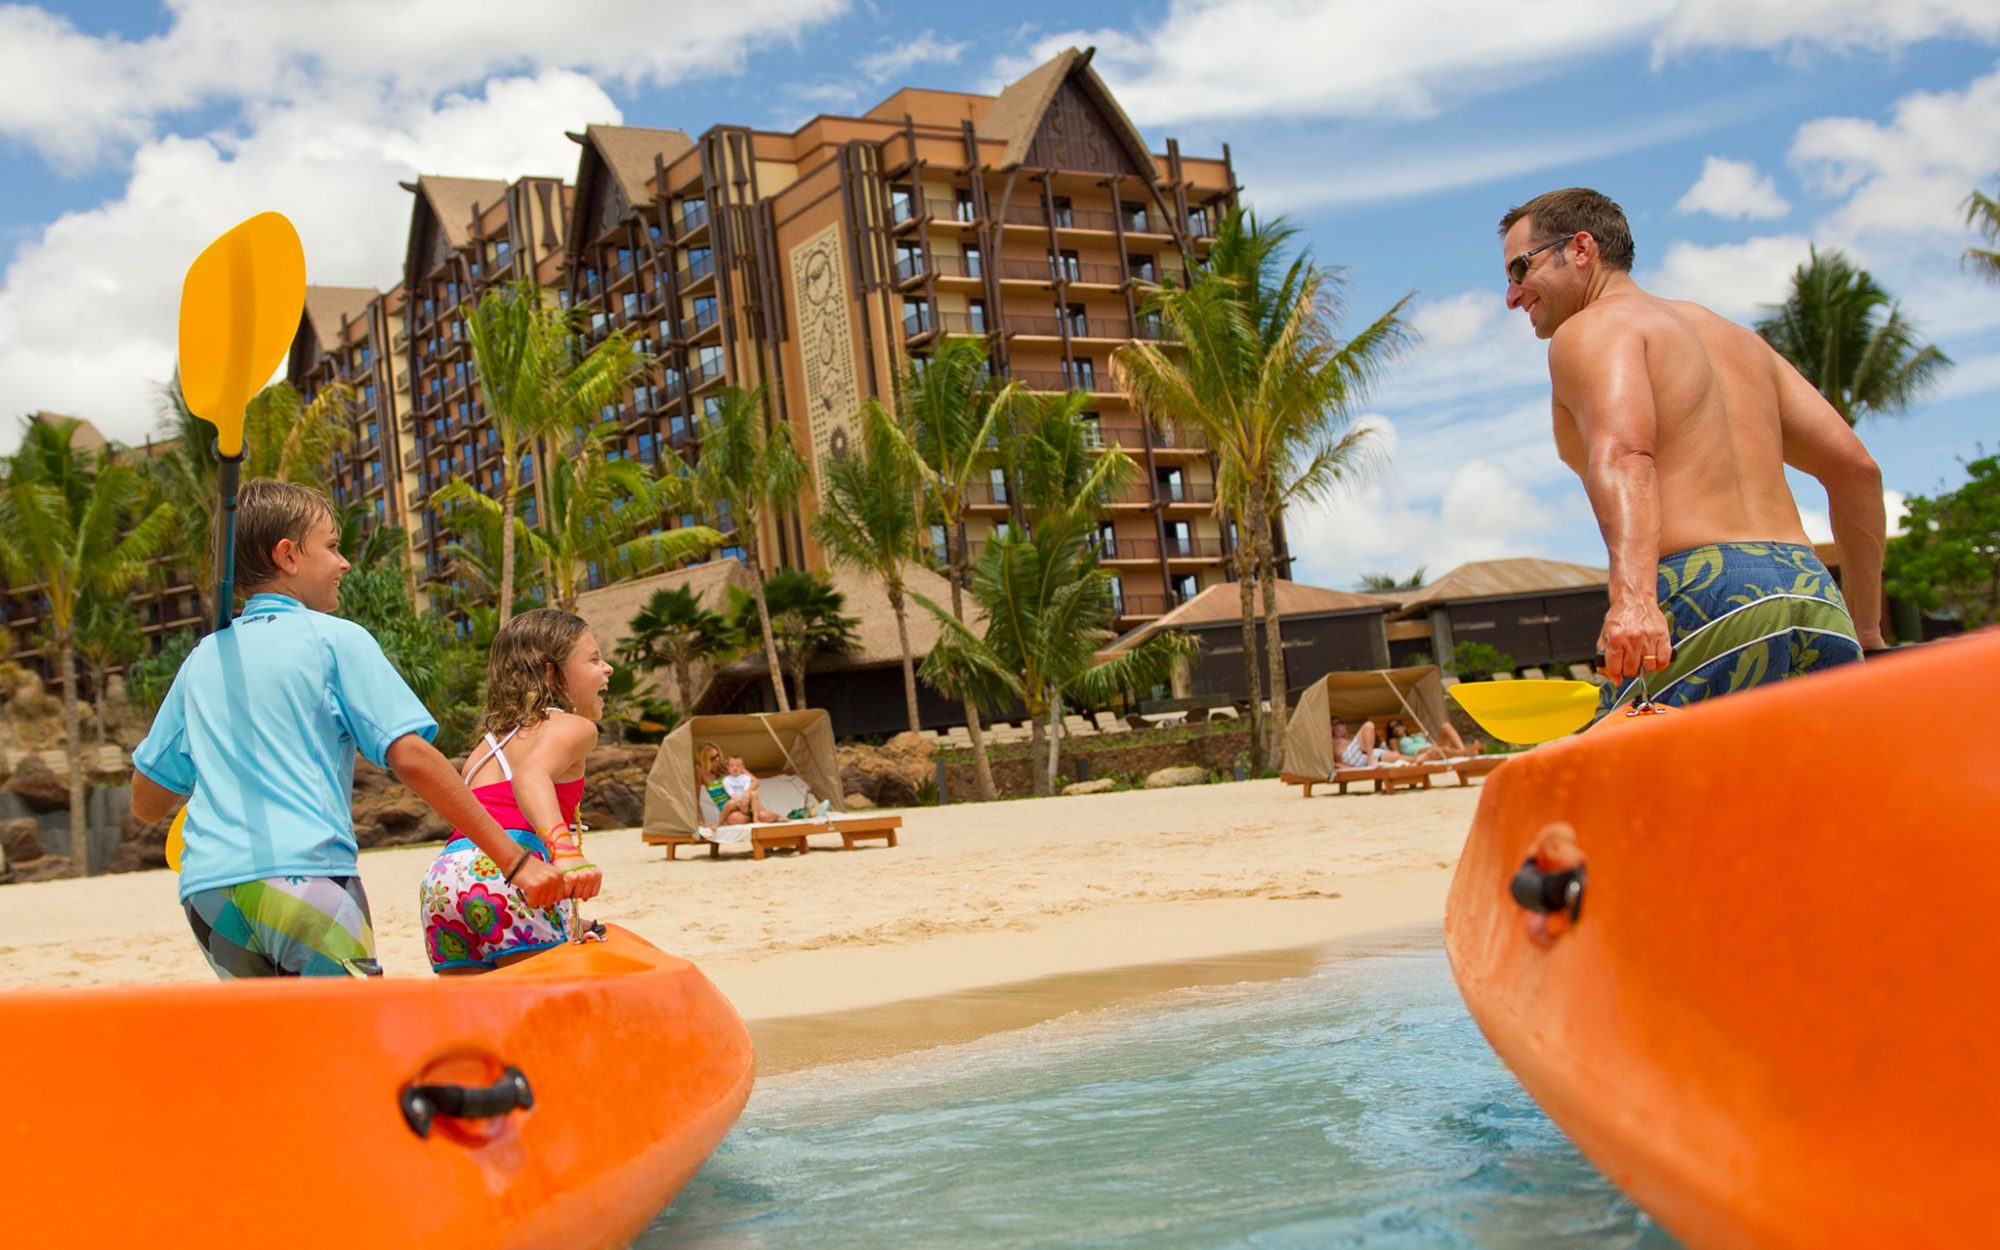 Best Family Beach Hotels: No. 1 Aulani, a Disney Resort & Spa, Kapolei, HI